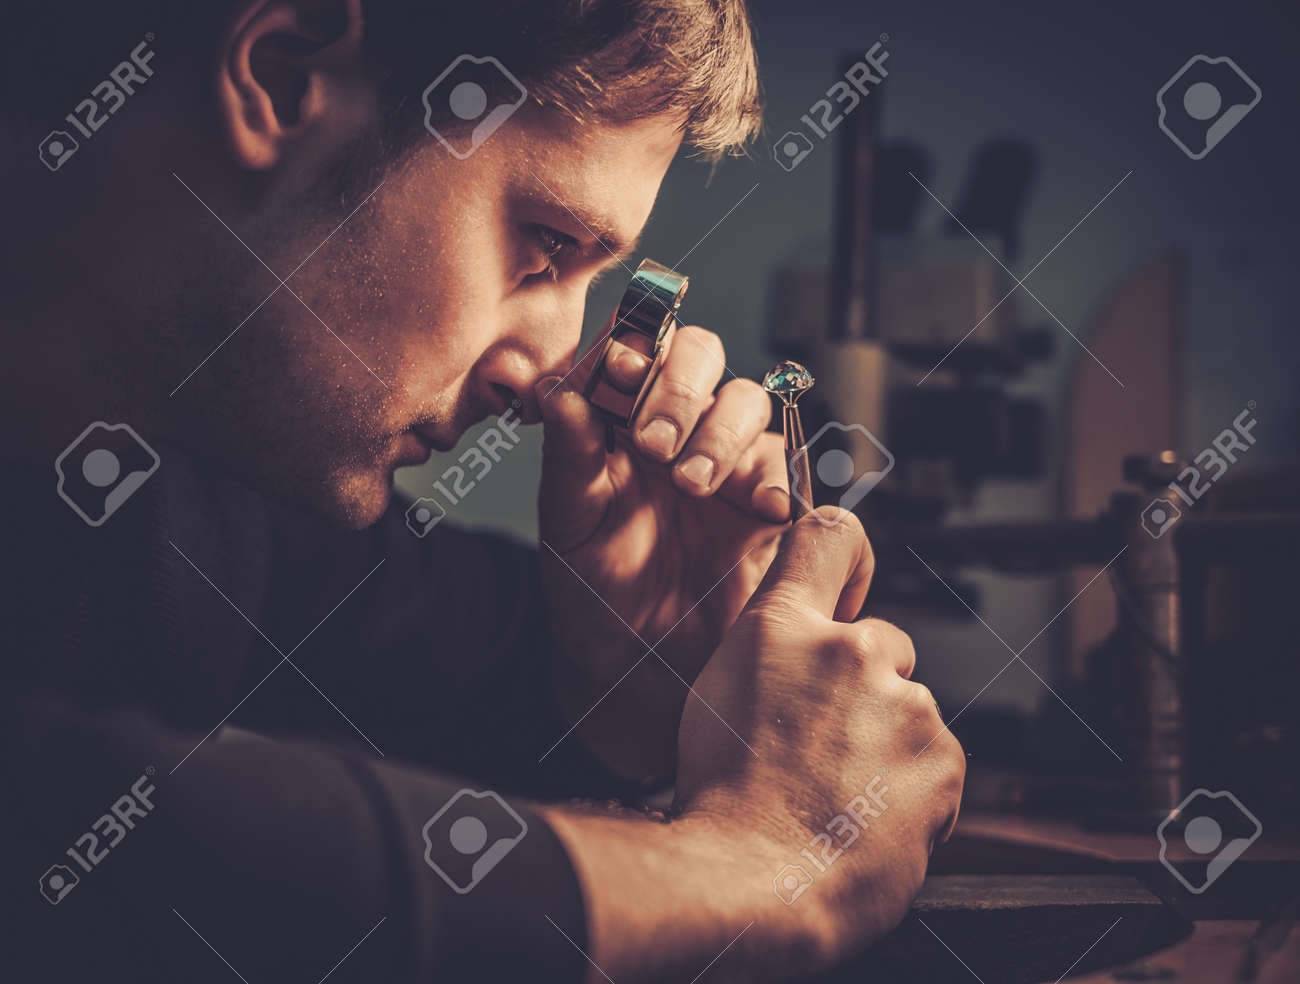 Jeweler looking at the ring through microscope in a workshop. Stock Photo - 50662043